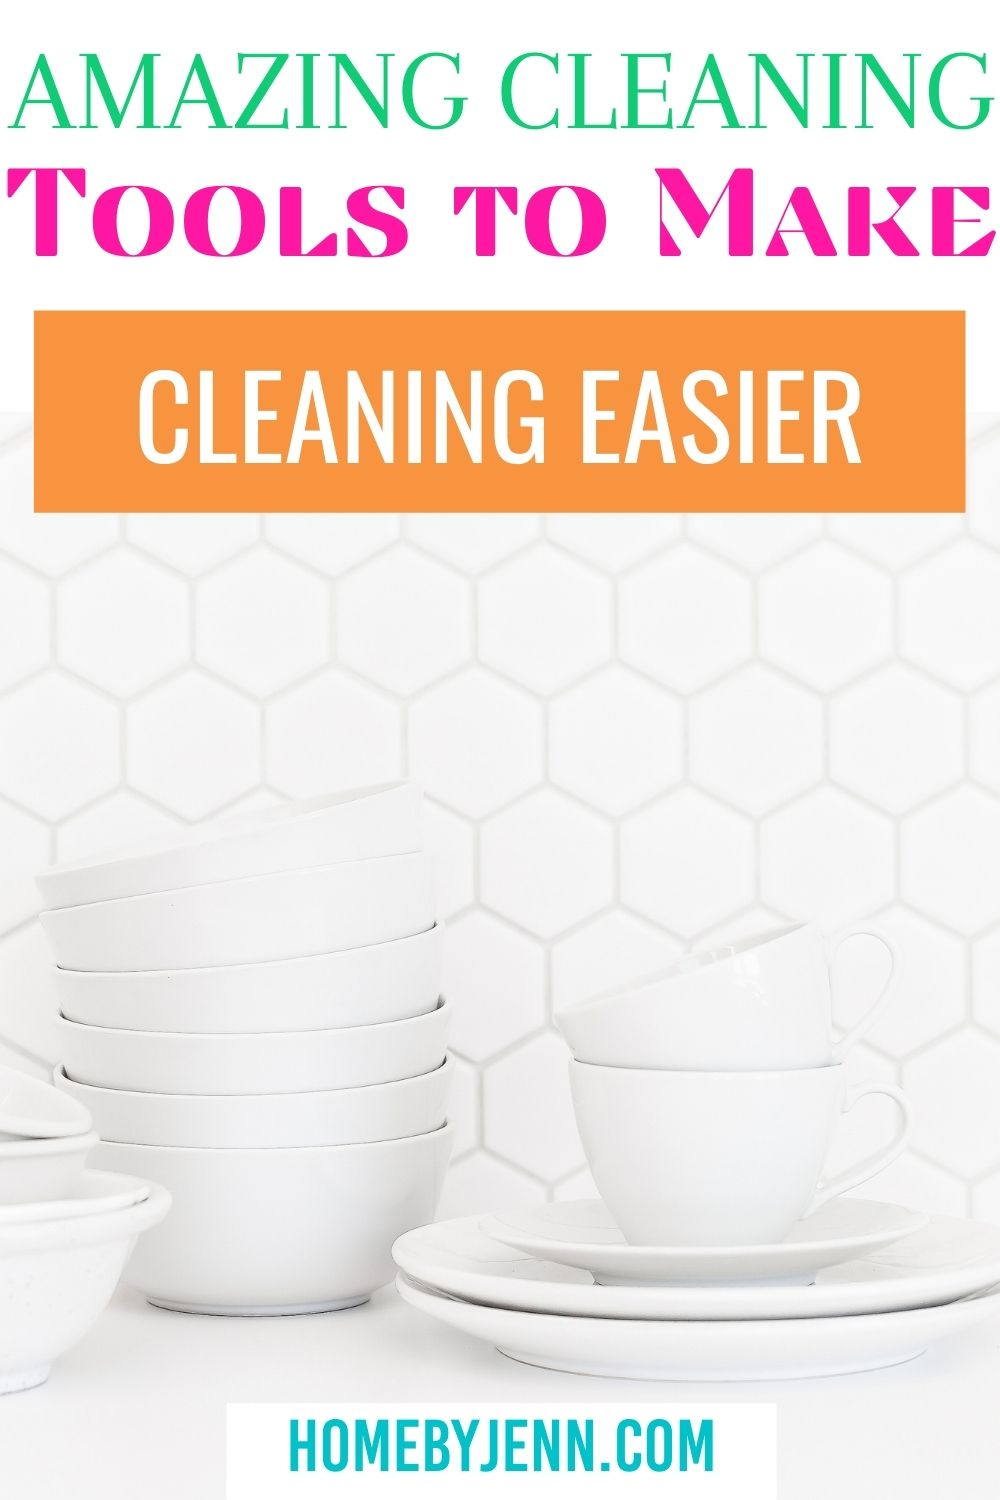 Wondering what cleaning tools you need in your home? Deep cleaning your home may not be the most exciting thing on your to-do list, but it's something that has to get done. The good news is there are tools that can make cleaning your home easier. Whether it's a fillable scrub brush or scouring pads, these amazing cleaning tools will have your home sparkling in no time. via @homebyjenn